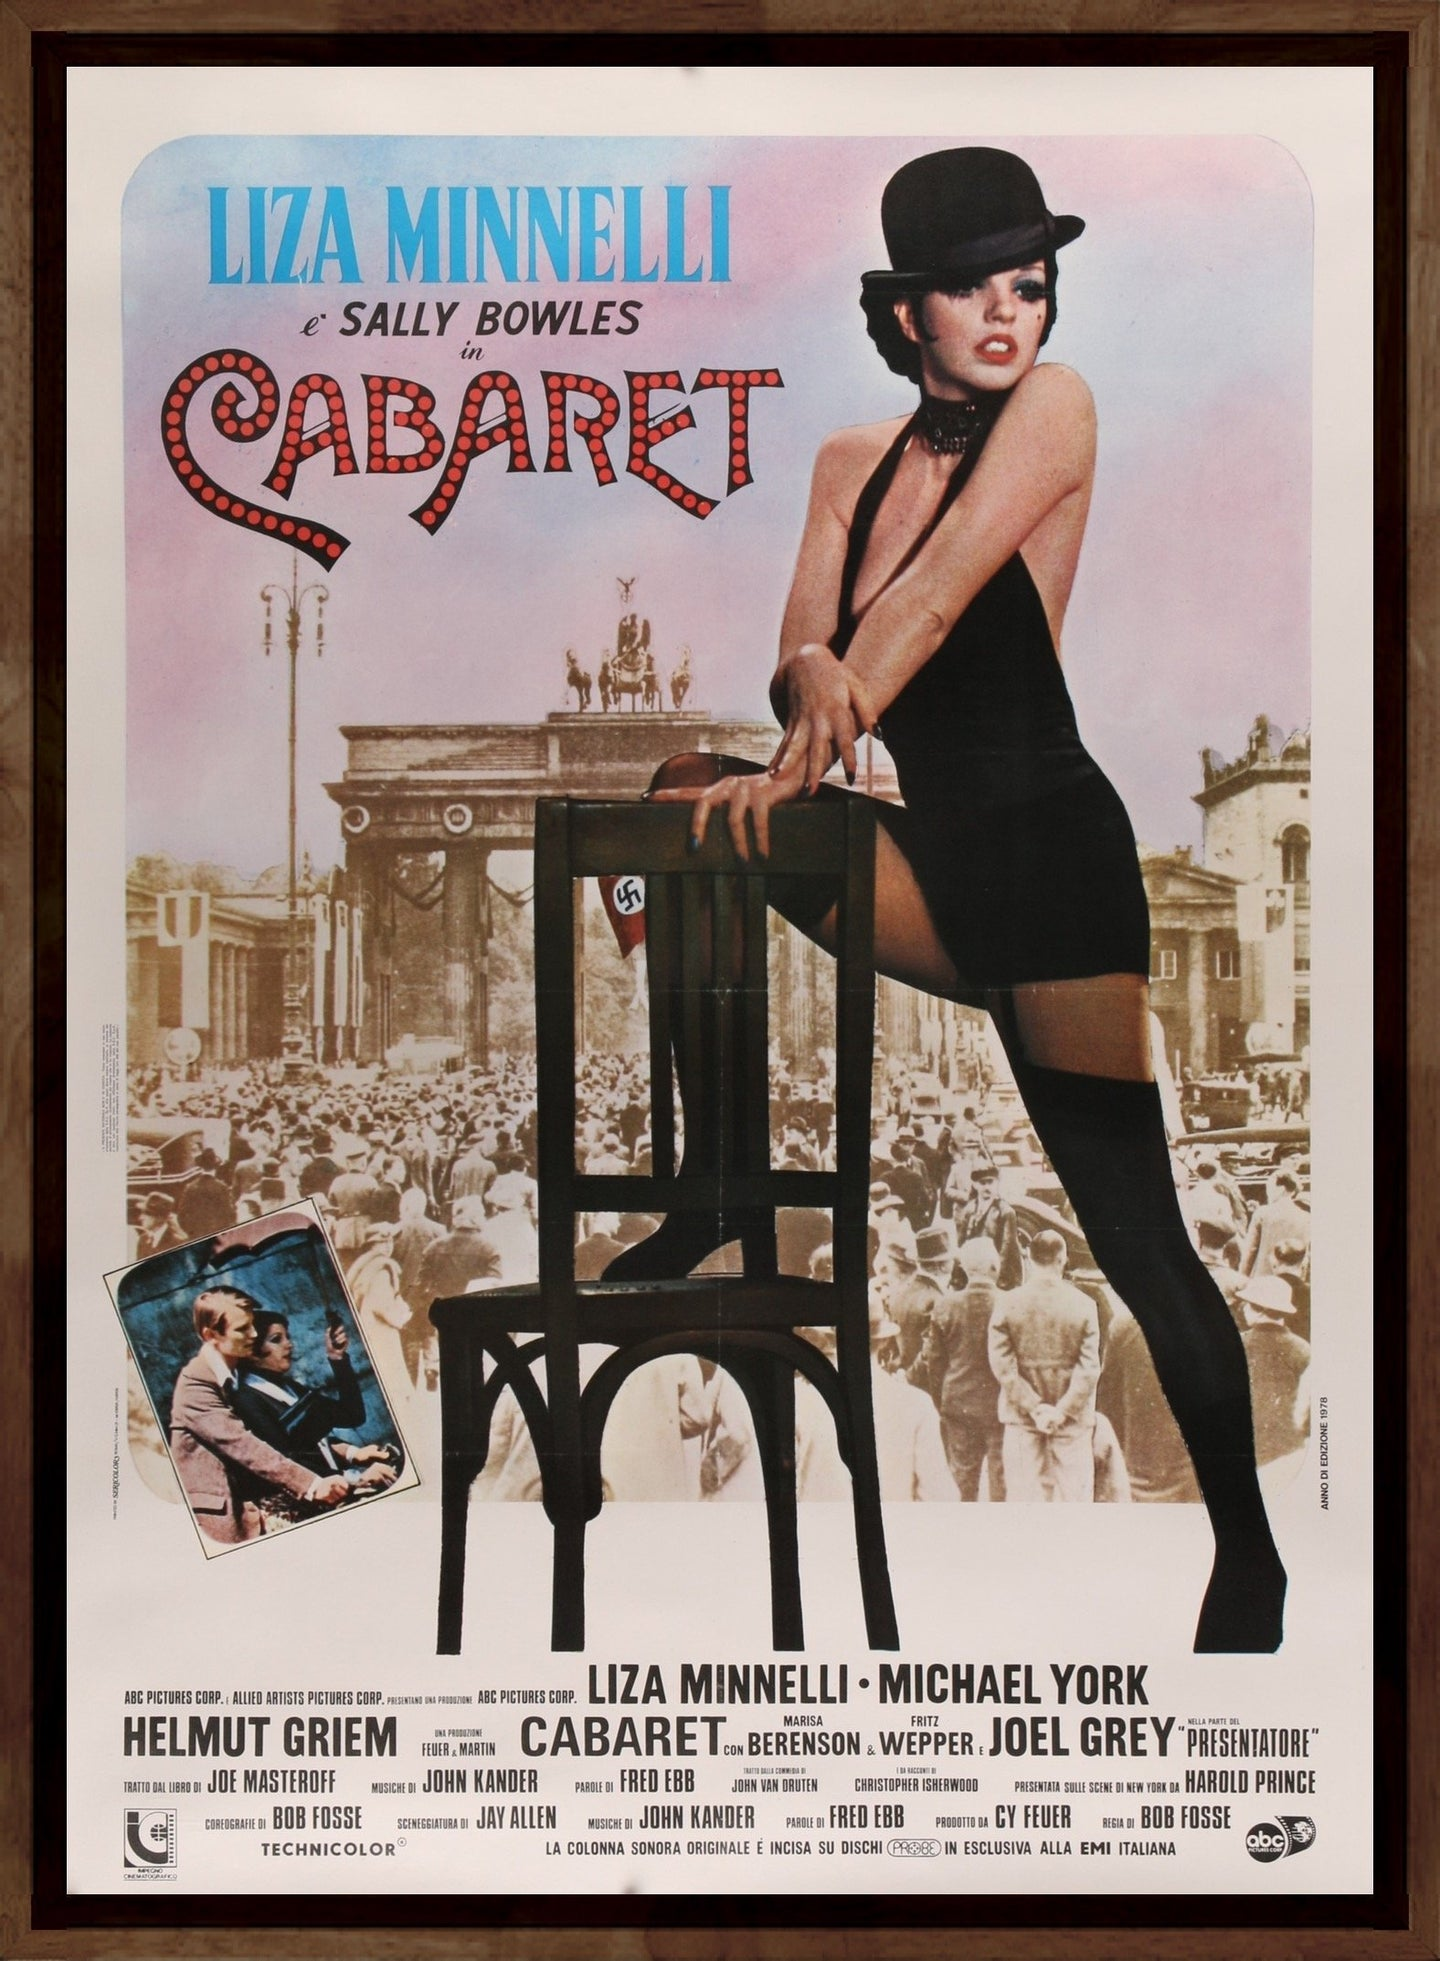 An original Italian movie poster for the film Cabaret starring Liza Minnelli